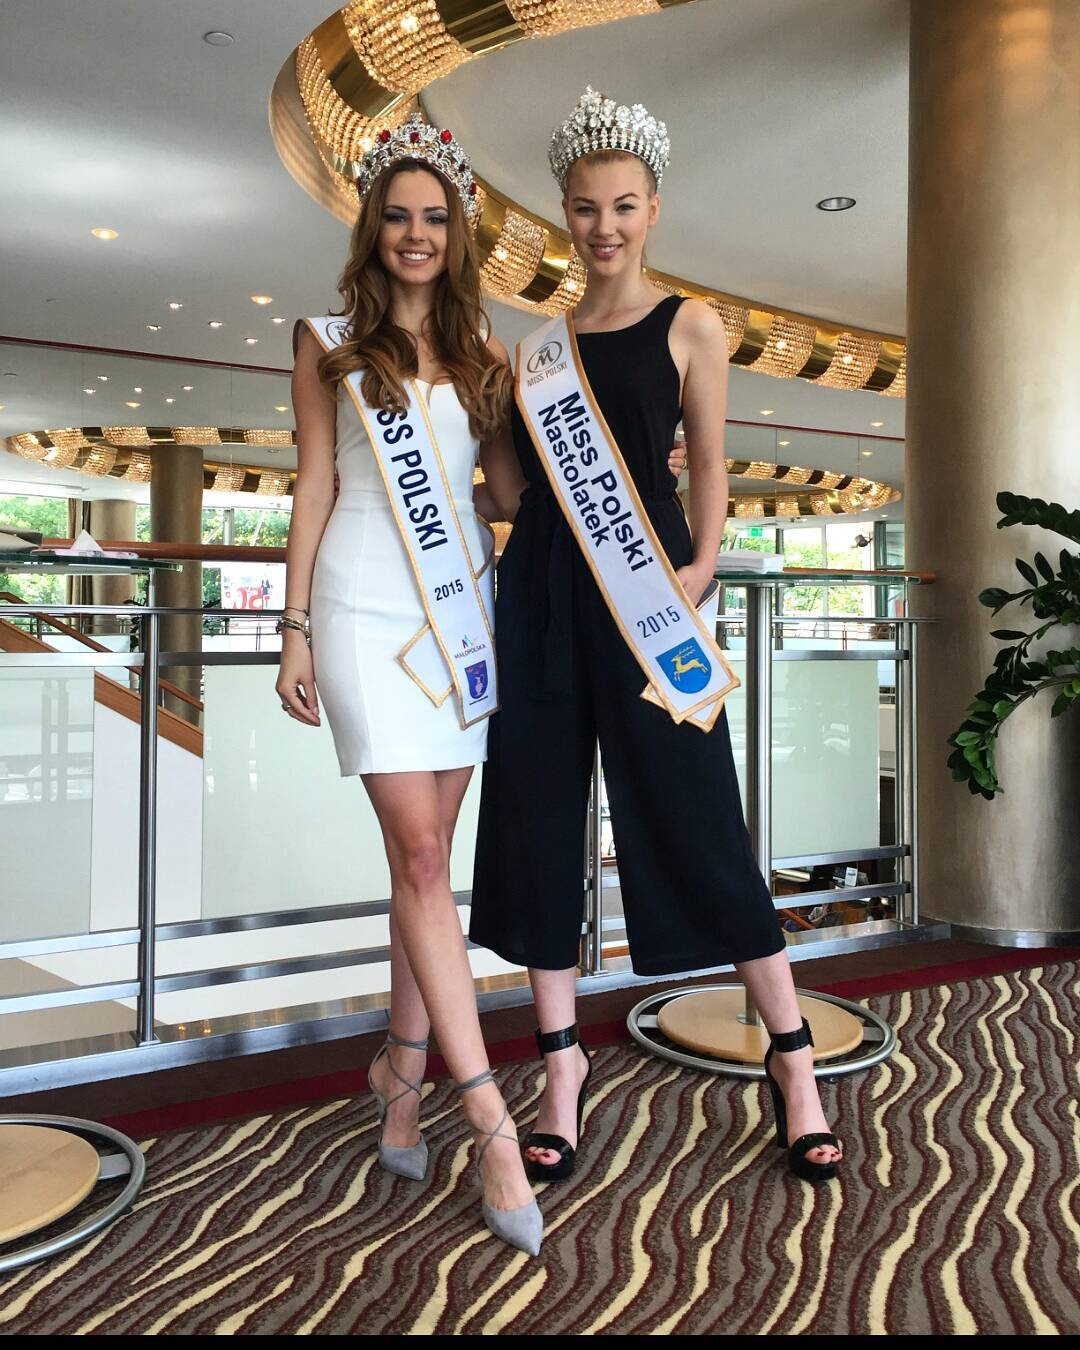 magdalena bienkowska, 2nd runner-up de miss supranational 2018/top 40 de miss world 2017/top 15 de miss international 2016. - Página 6 13388610